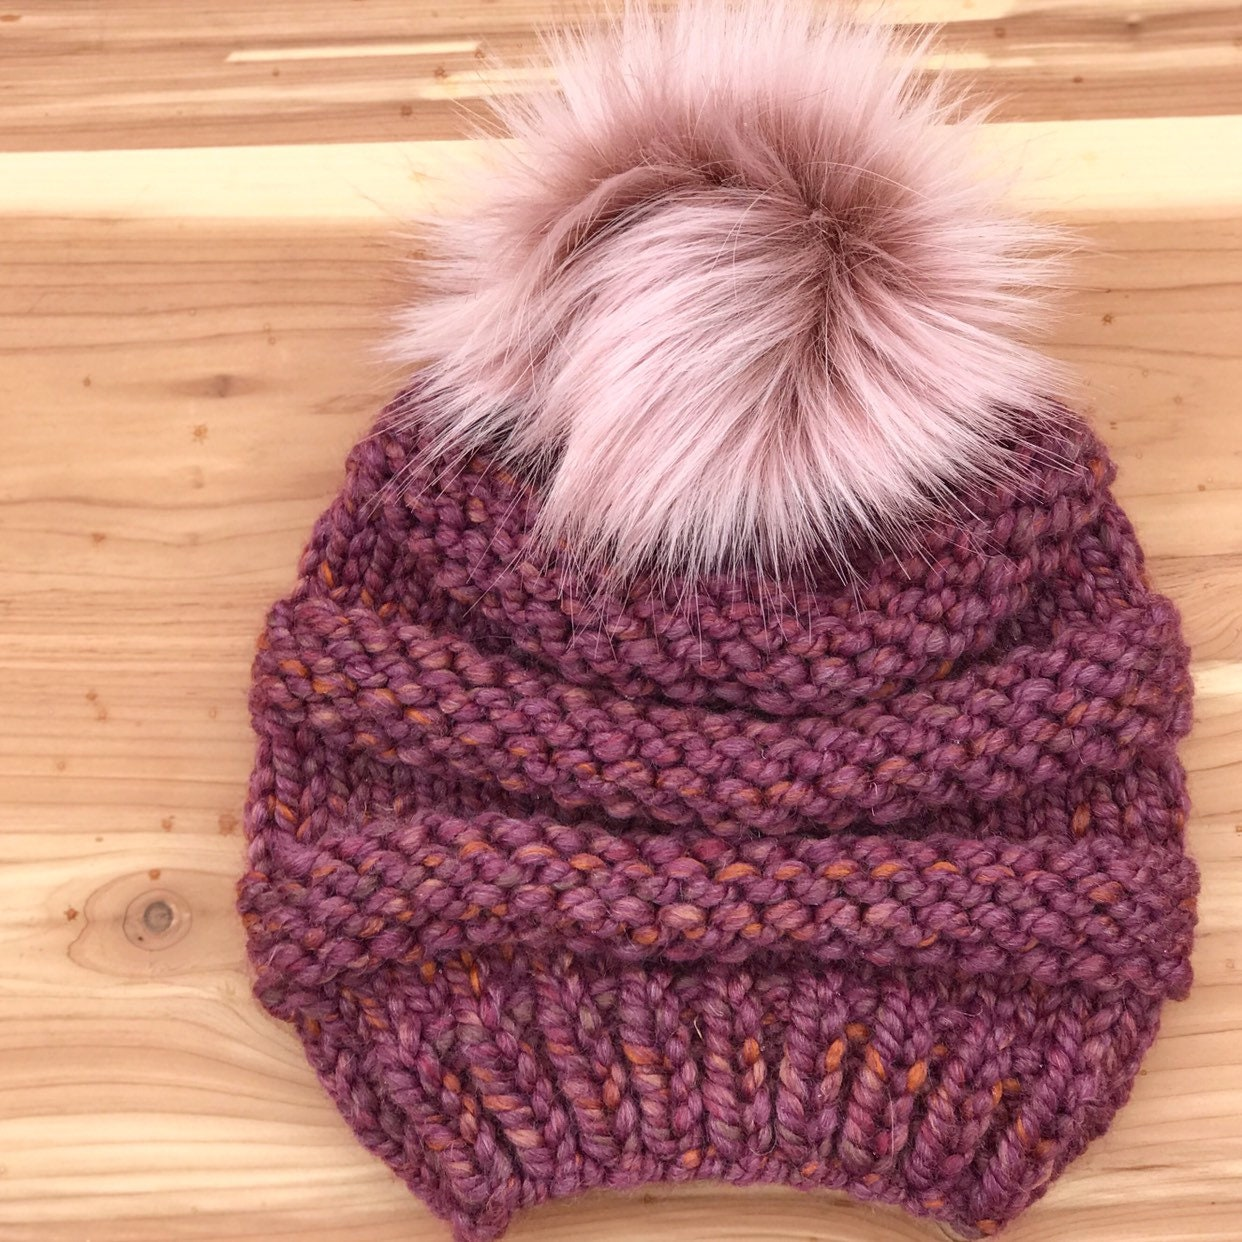 To acquire Pom pom beanies knitted for fall-winter picture trends